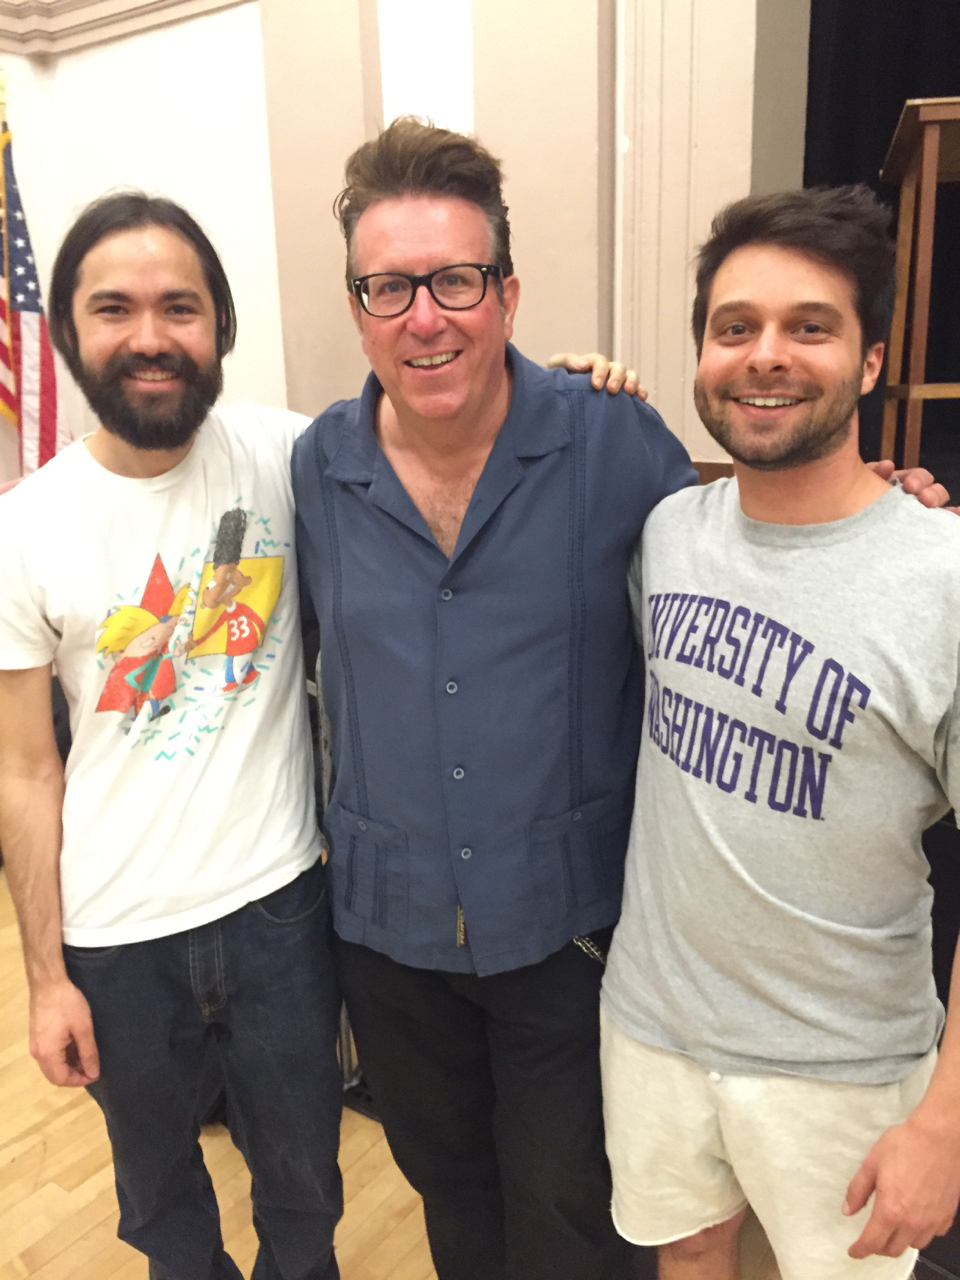 Jonathan Palmquist (left), Bernie Dresel (middle), and myself at rehearsal with the West Coast Symphony in Santa Barbara. Summer, 2016